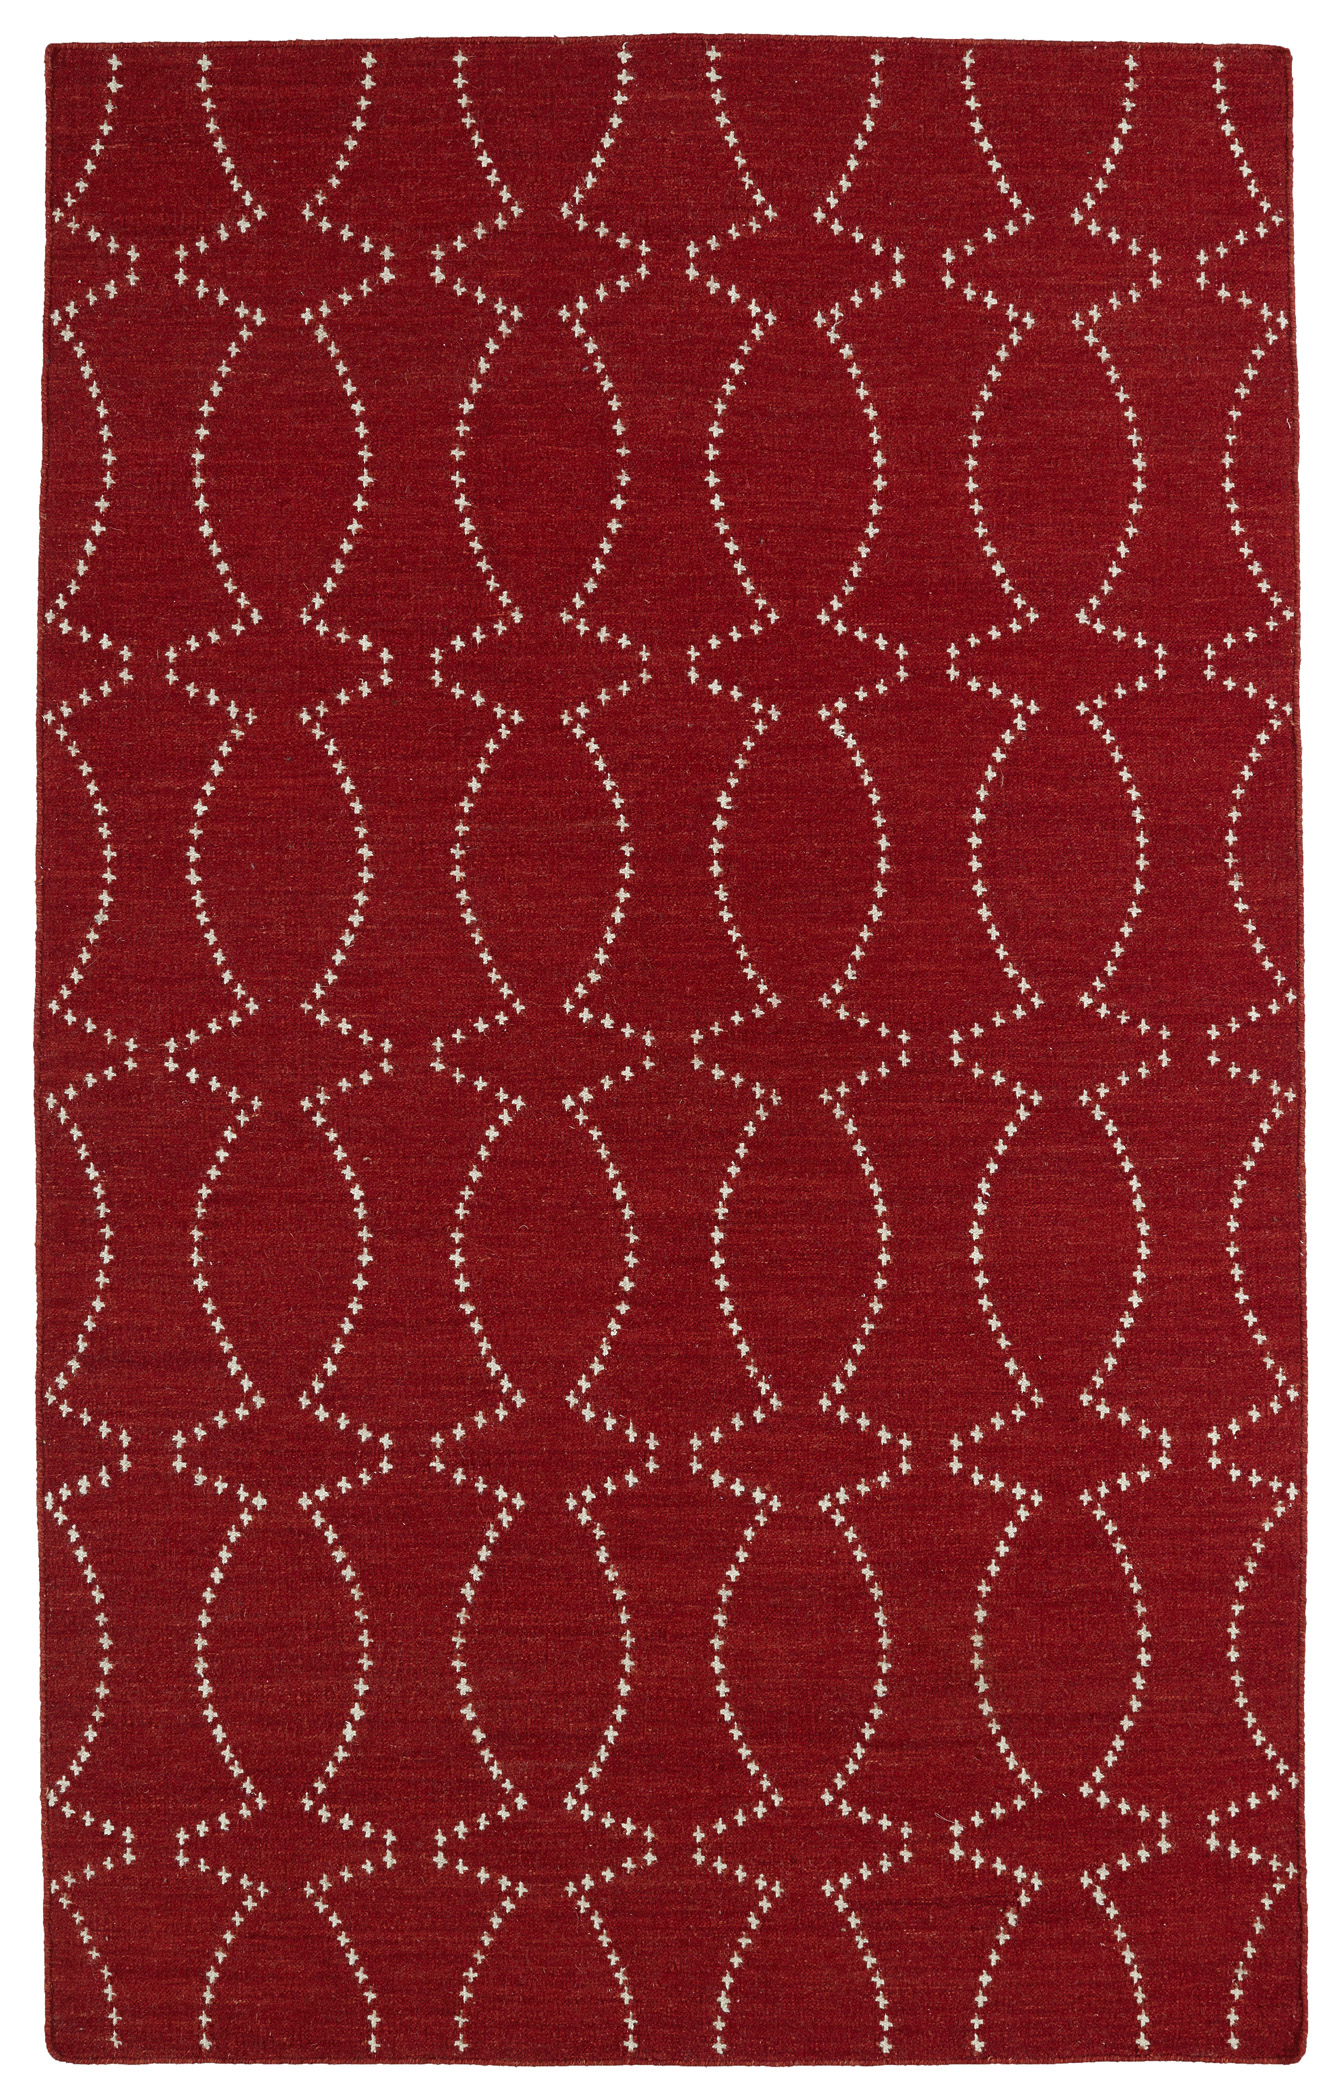 Kaleen Glam GLA07 25 Red Area Rug